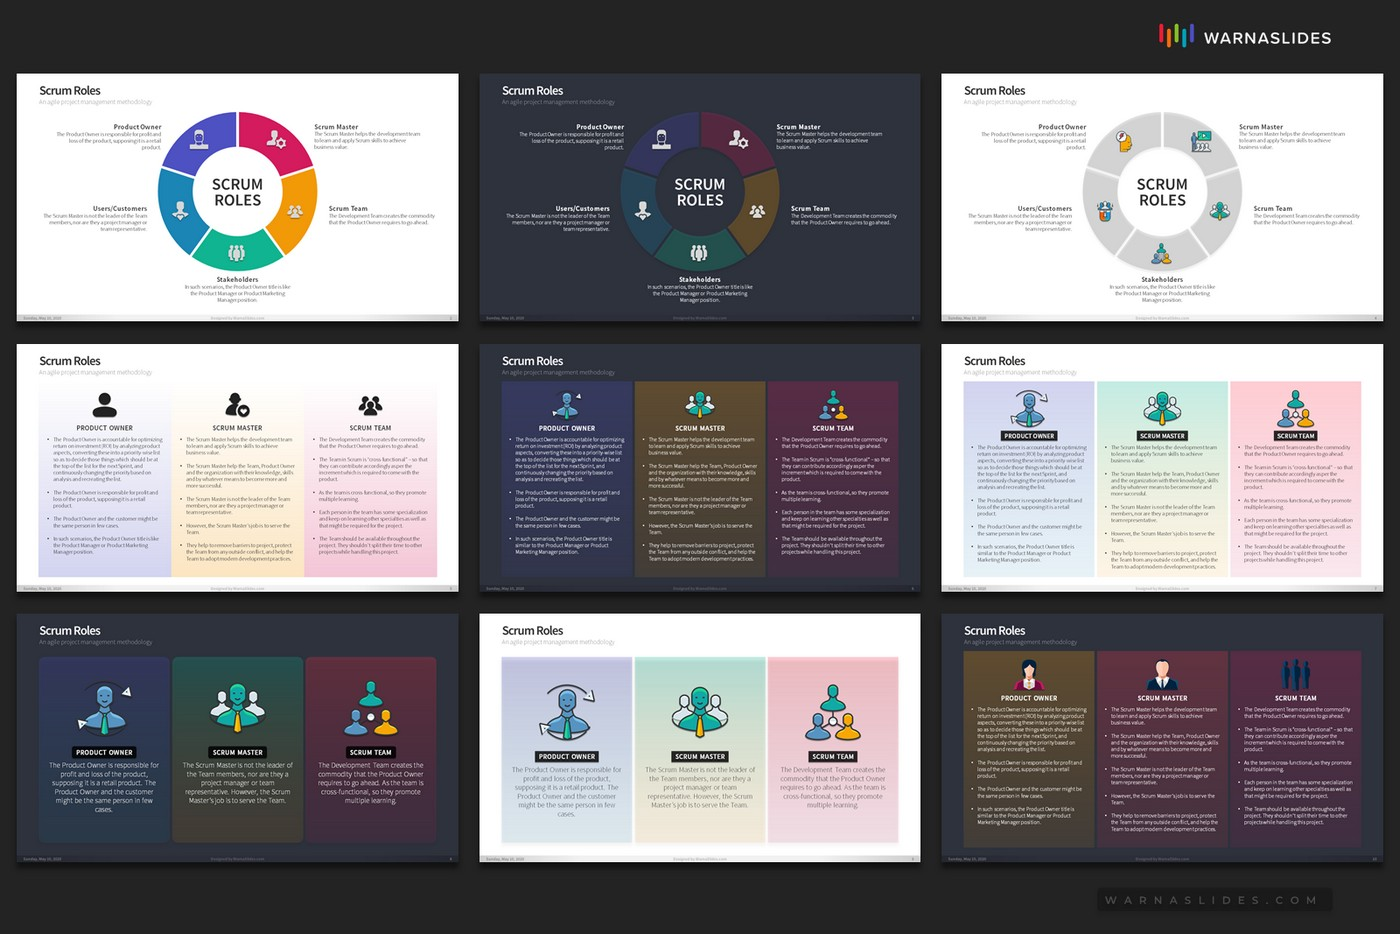 Agile-Scrum-Framework-Scrum-Process-Diagram-PowerPoint-Template-for-Business-Pitch-Deck-Professional-Creative-PowerPoint-Icons-009